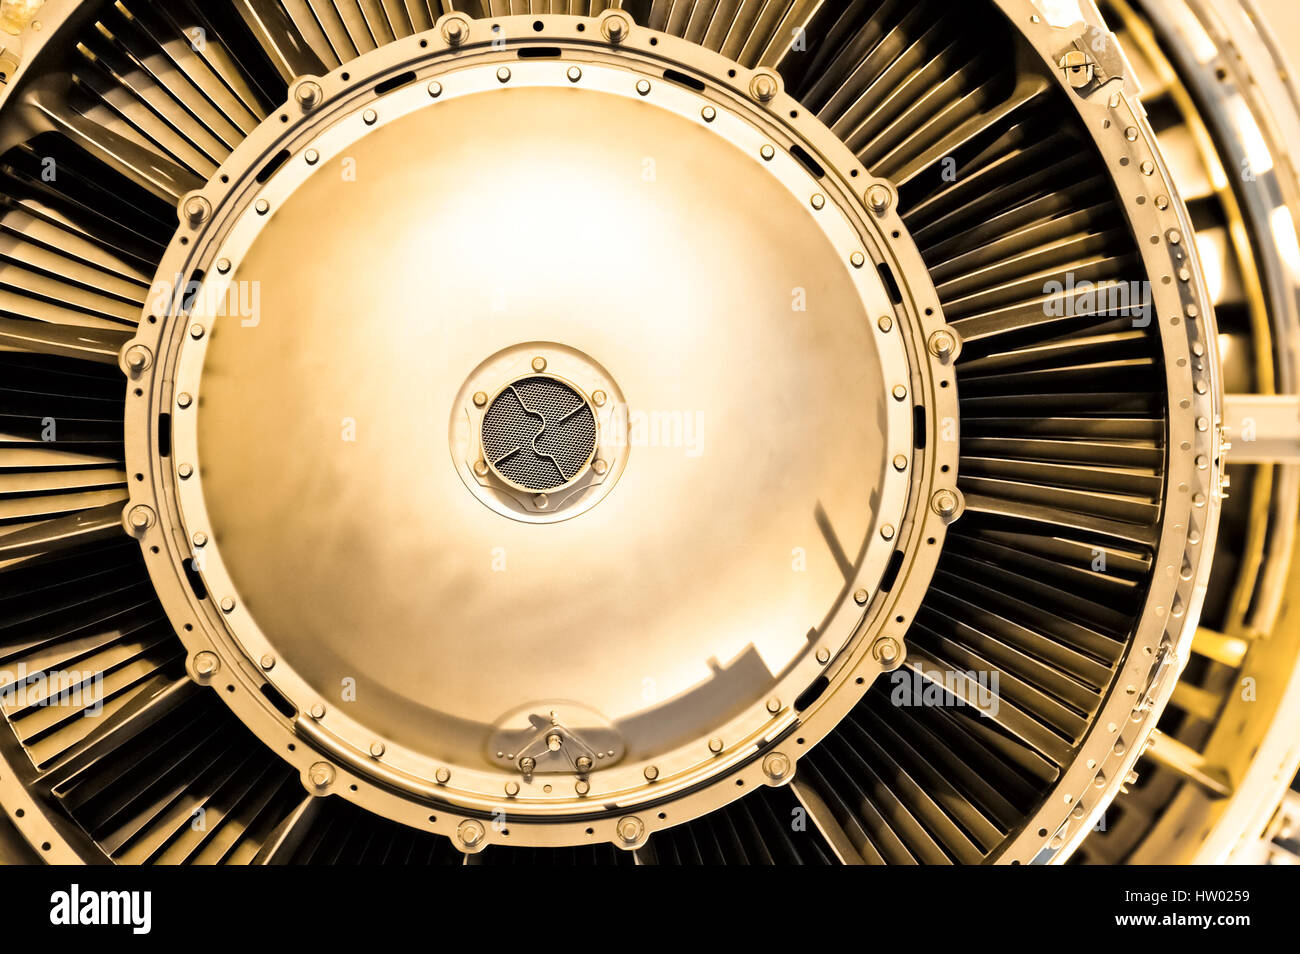 aircraft jet engine abstract with a golden tint - Stock Image